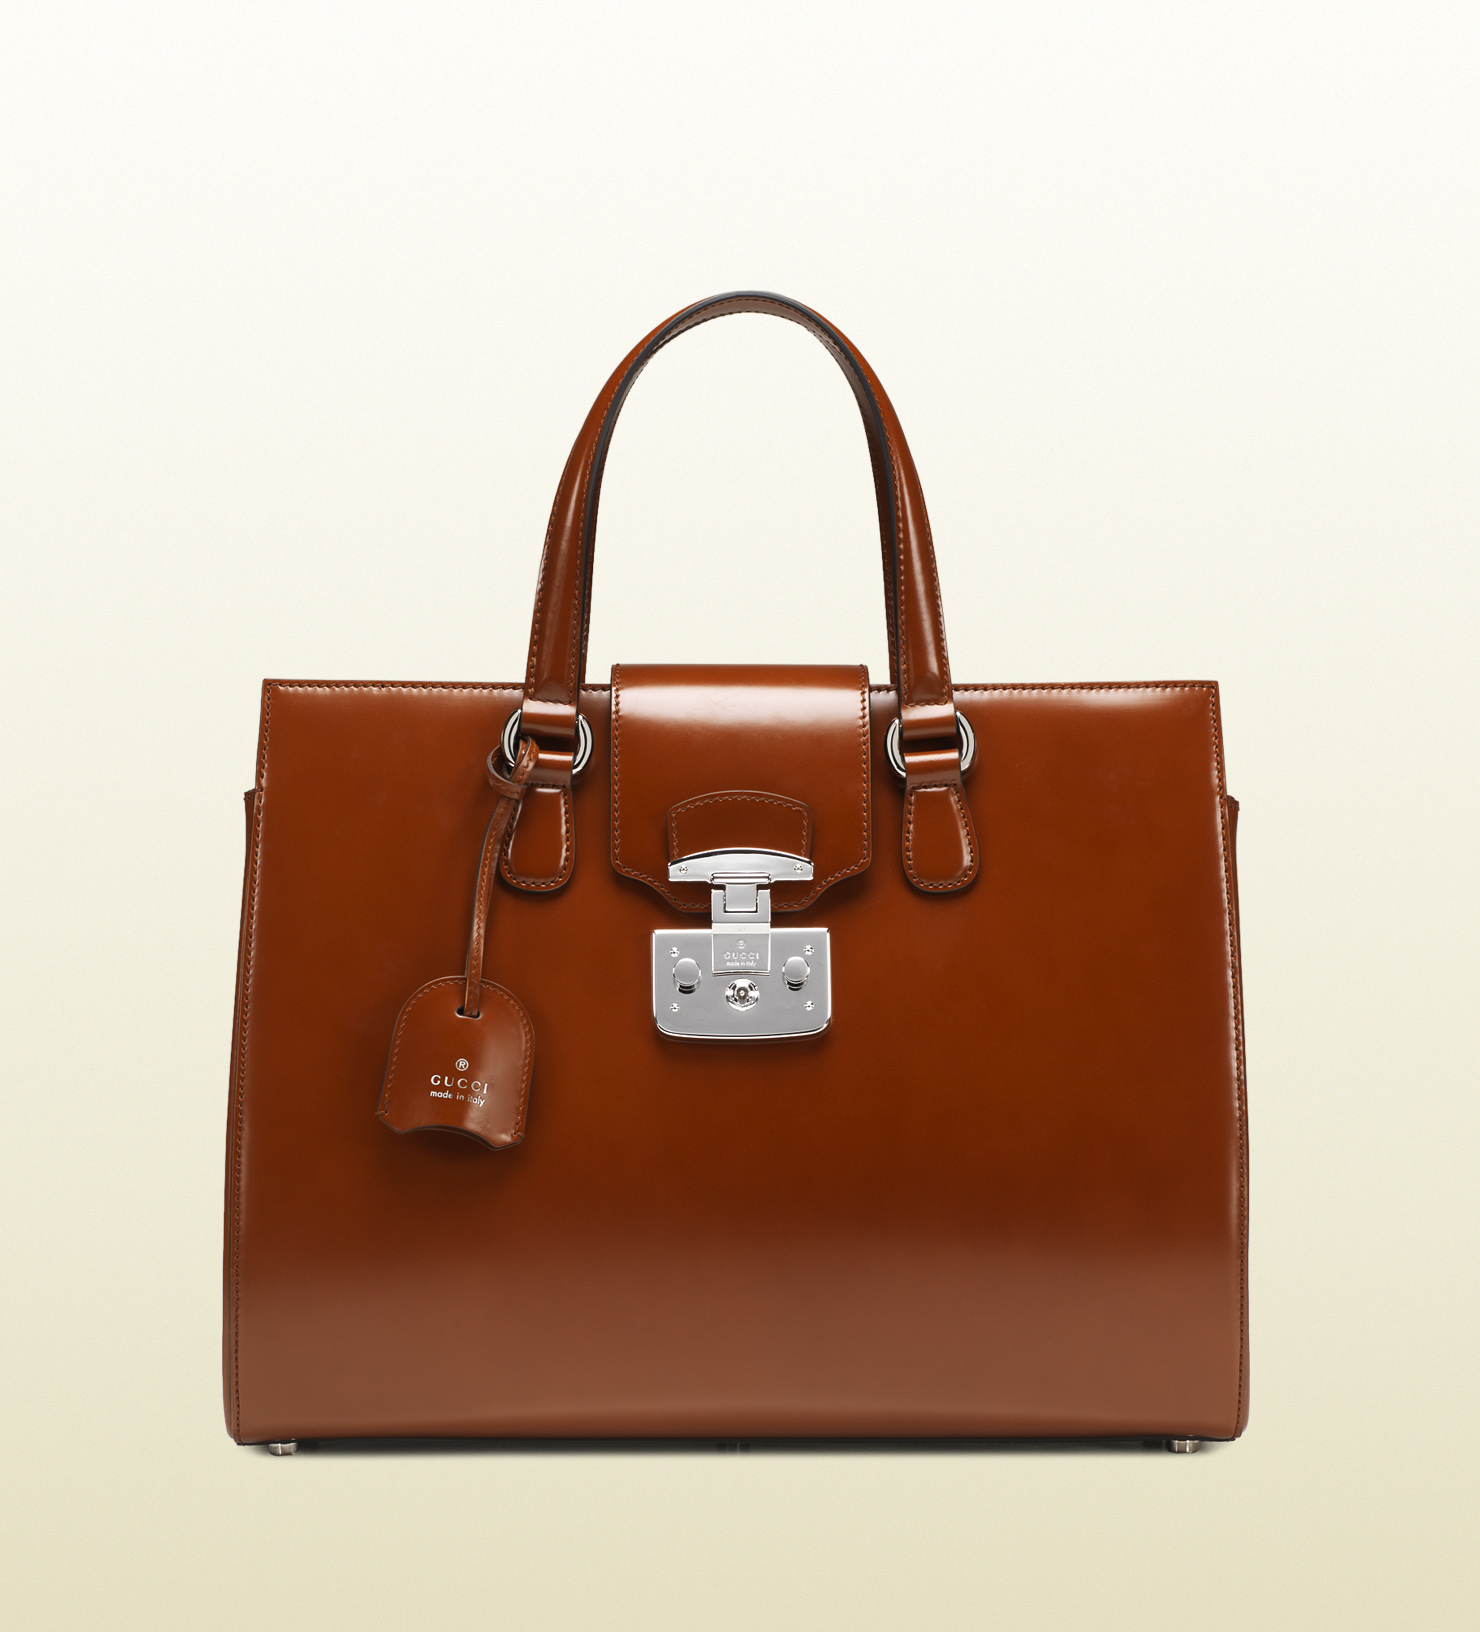 d136204884b Gucci Lady Lock Leather Tote in Brown - Lyst